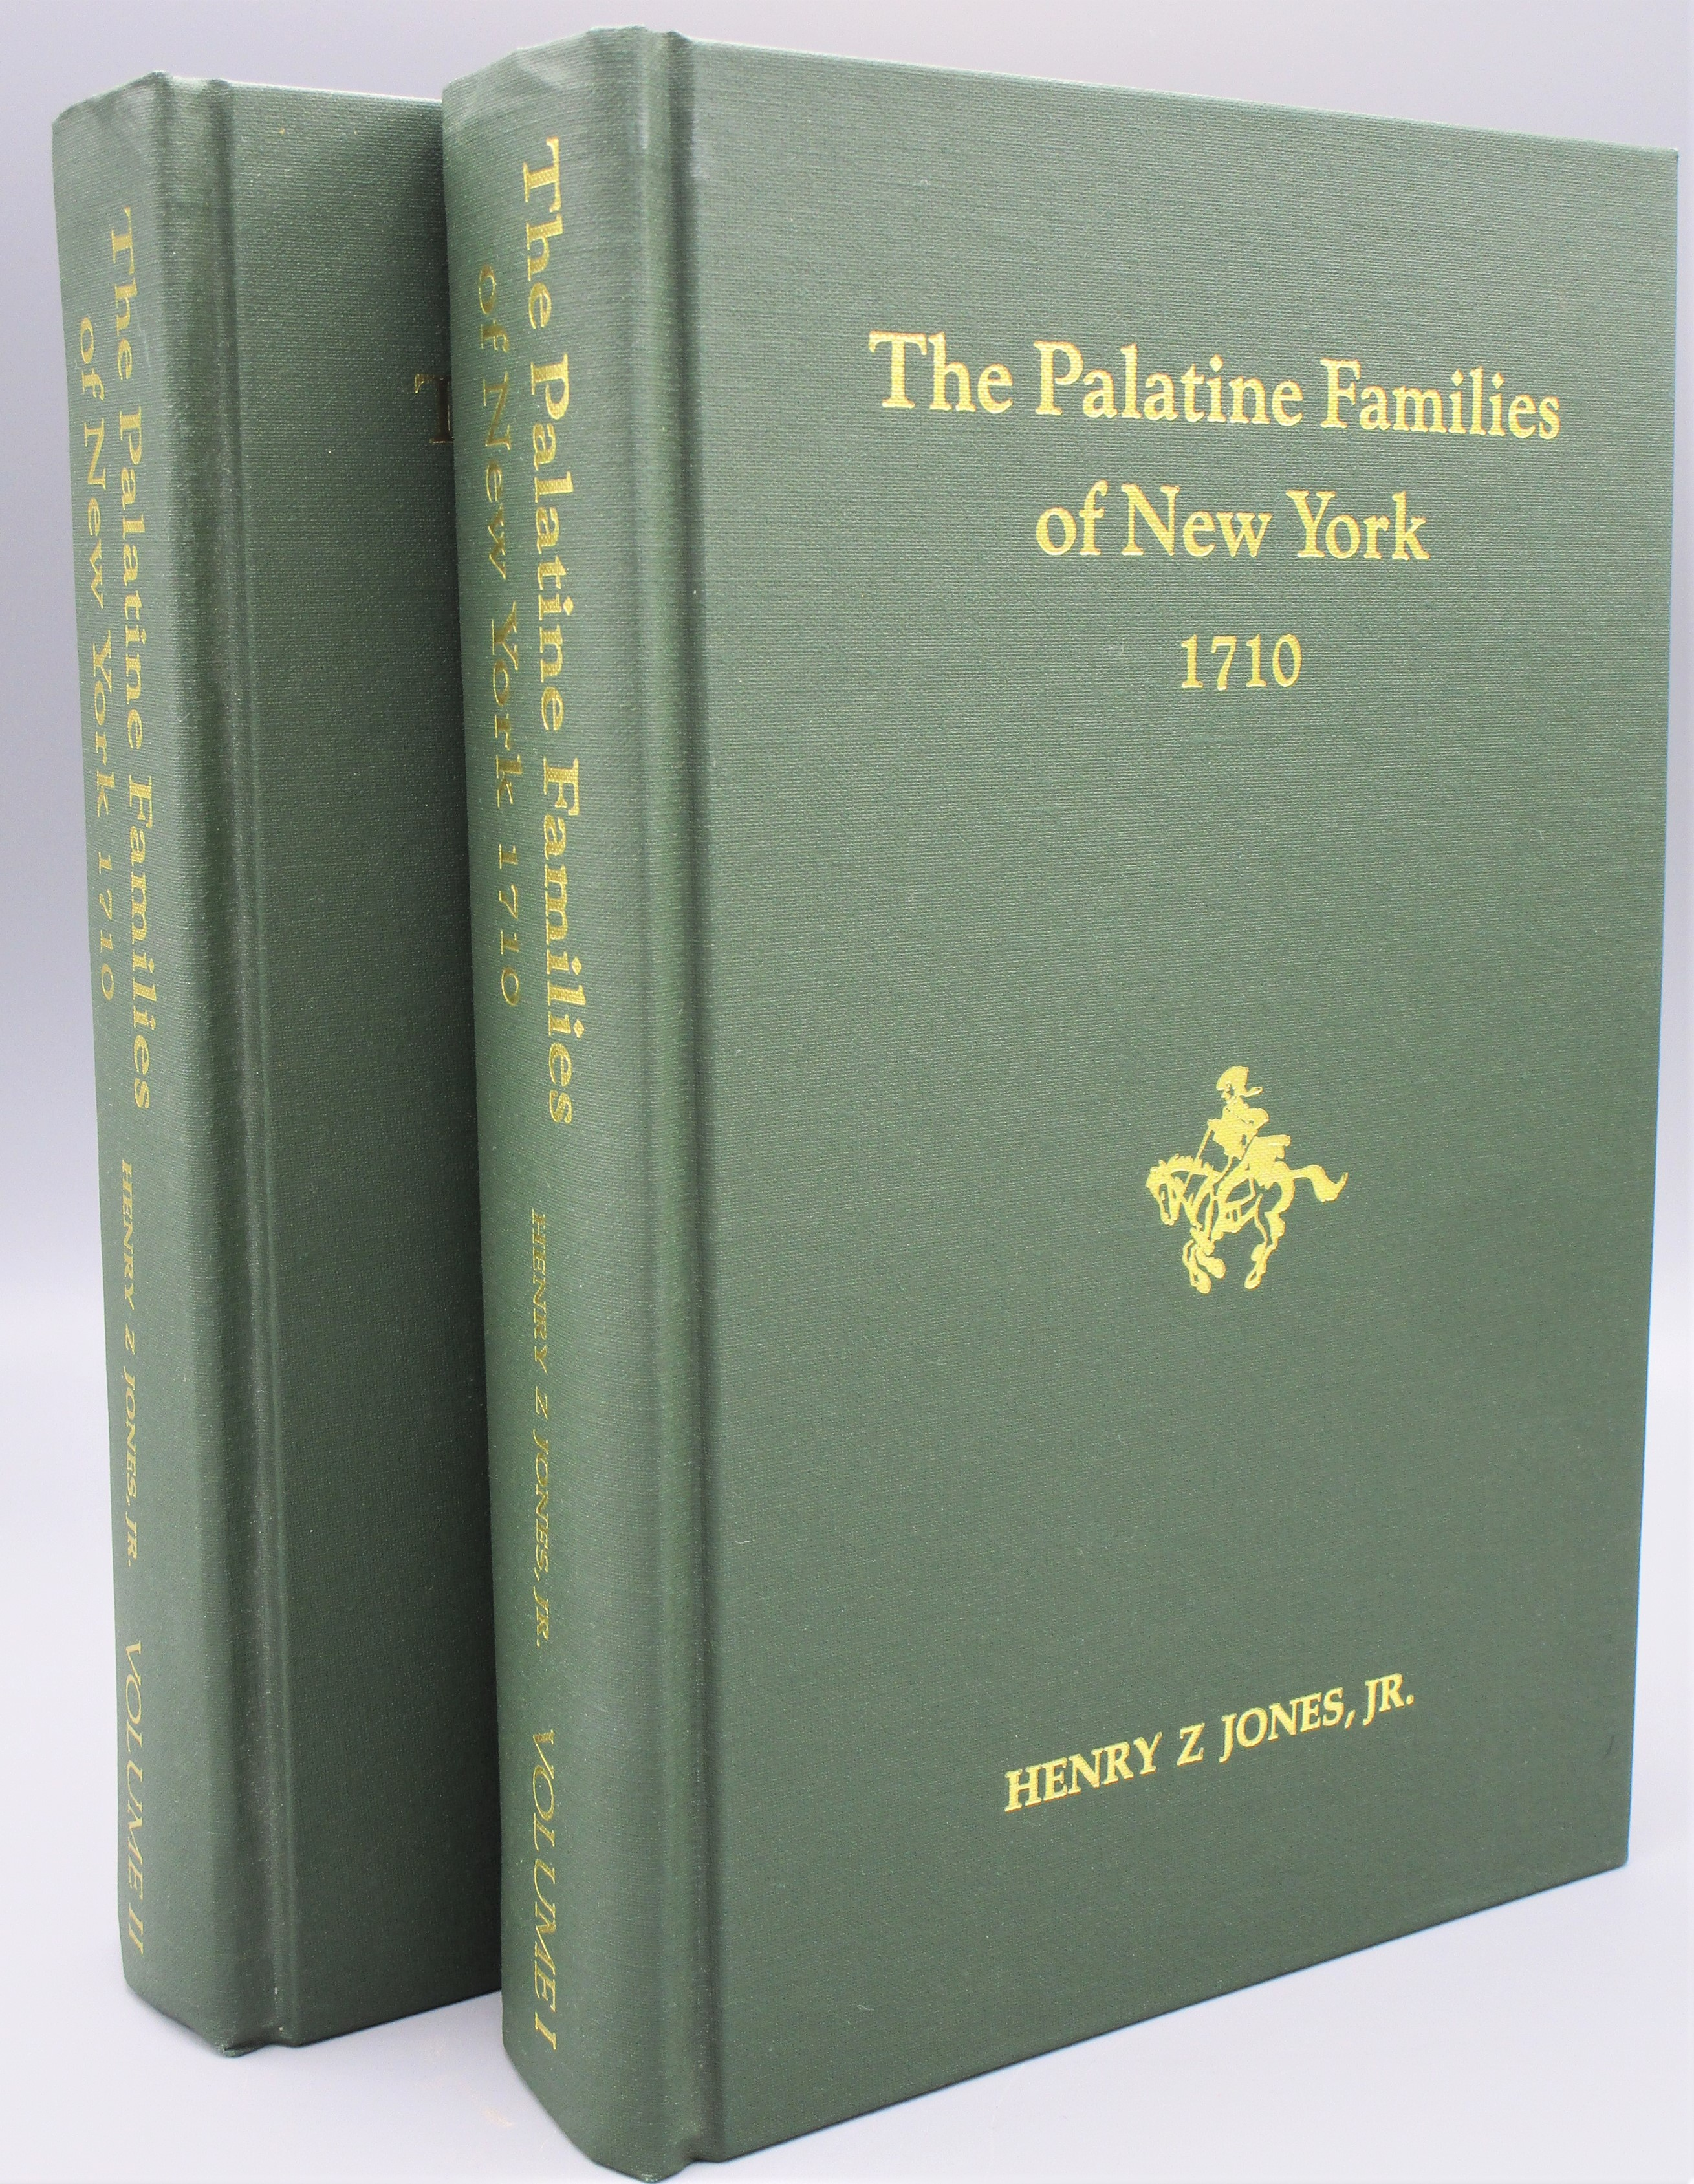 THE PALATINE FAMILIES OF NEW YORK 1710, by Henry Z. Jones, Jr. - 1985